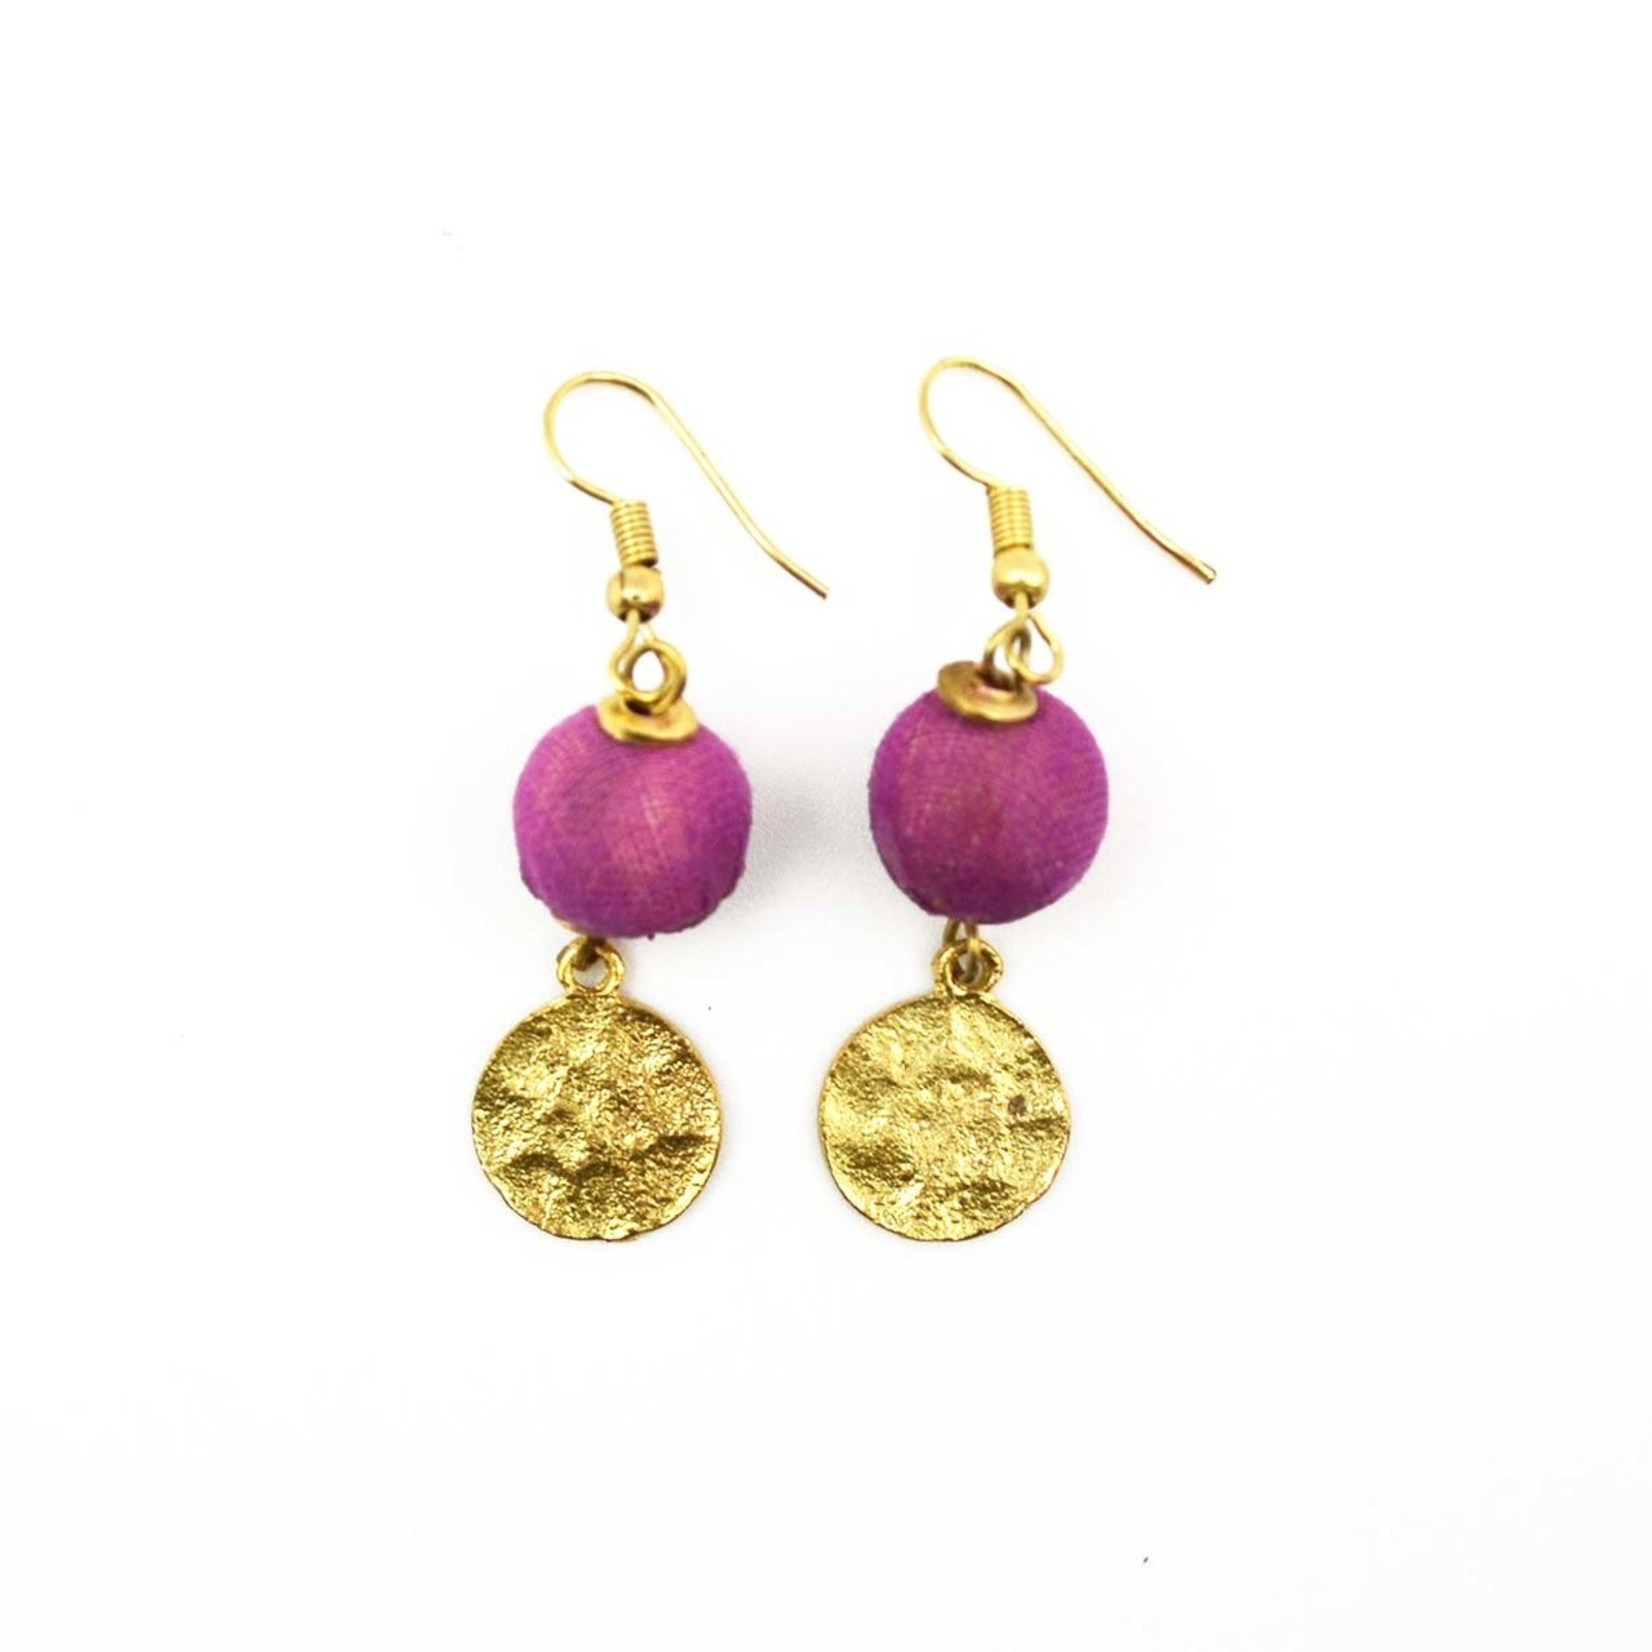 Earrings/Sania Gold Disc w/Silk Saree Covered Bead